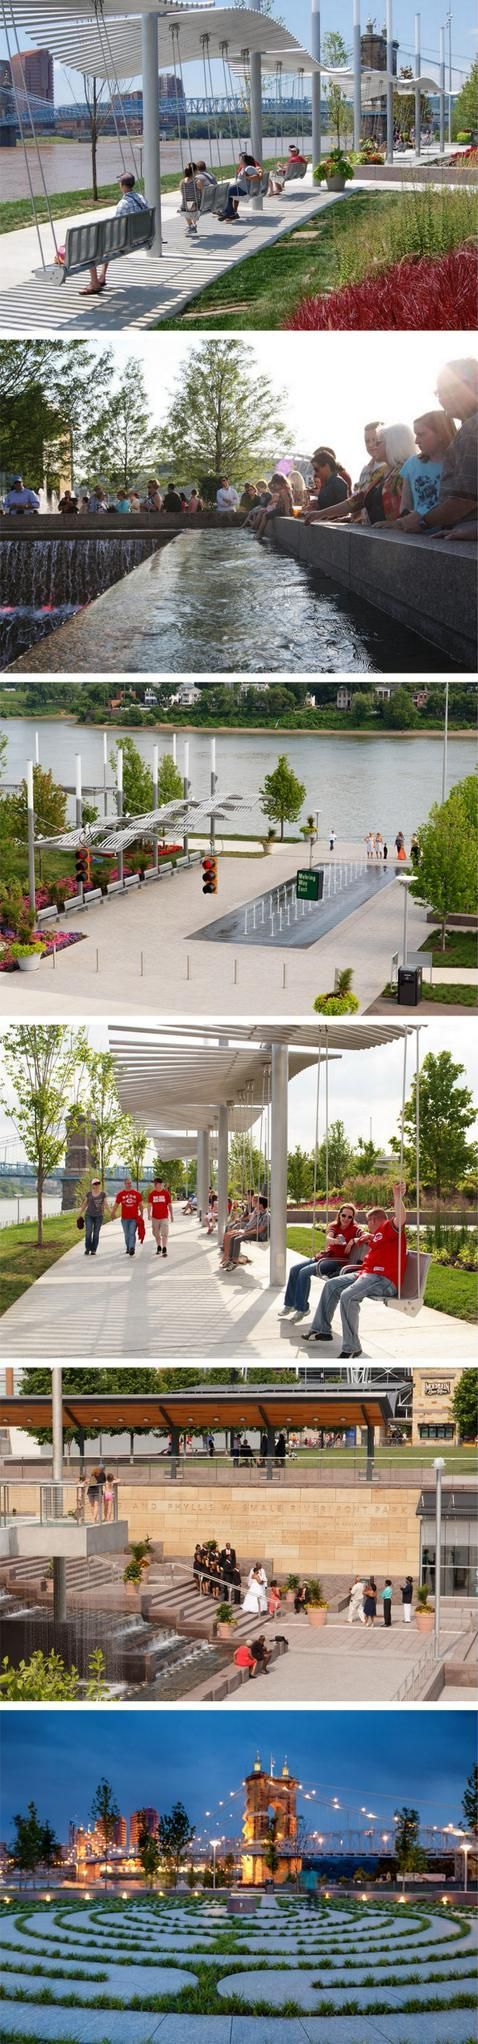 The John G. and Phyllis W. Smale Riverfront Park is a 32-acre park along the banks of the Ohio River in downtown Cincinnati.